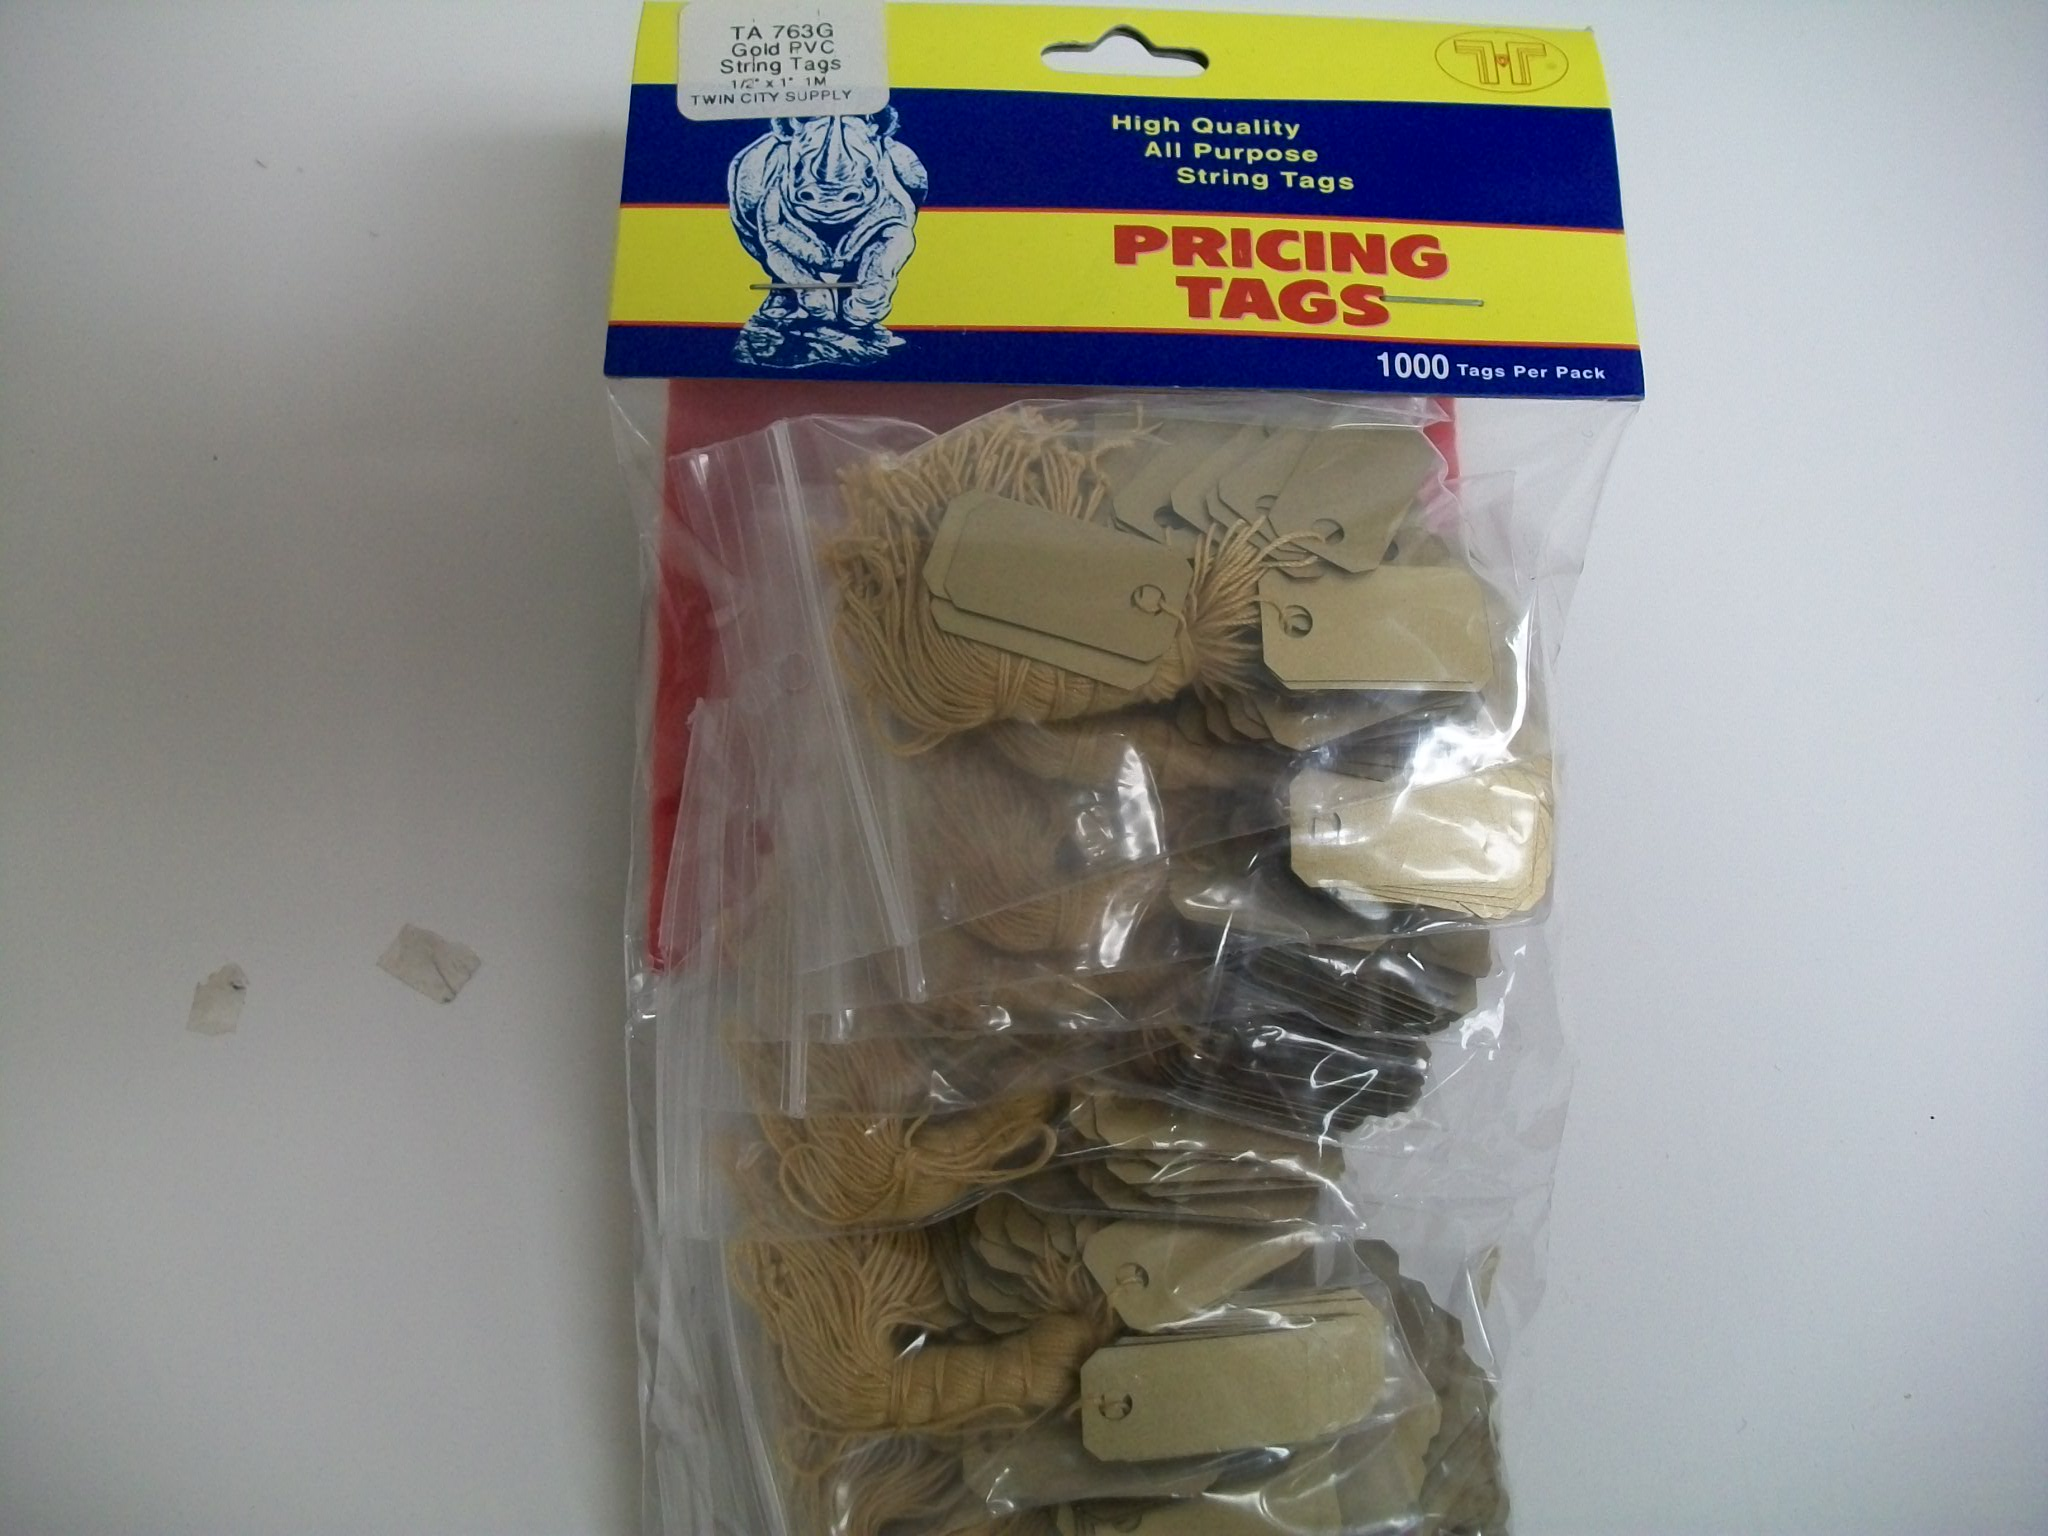 TA763G Jewelry String Tags--bx of 1000 Plastic--Gold